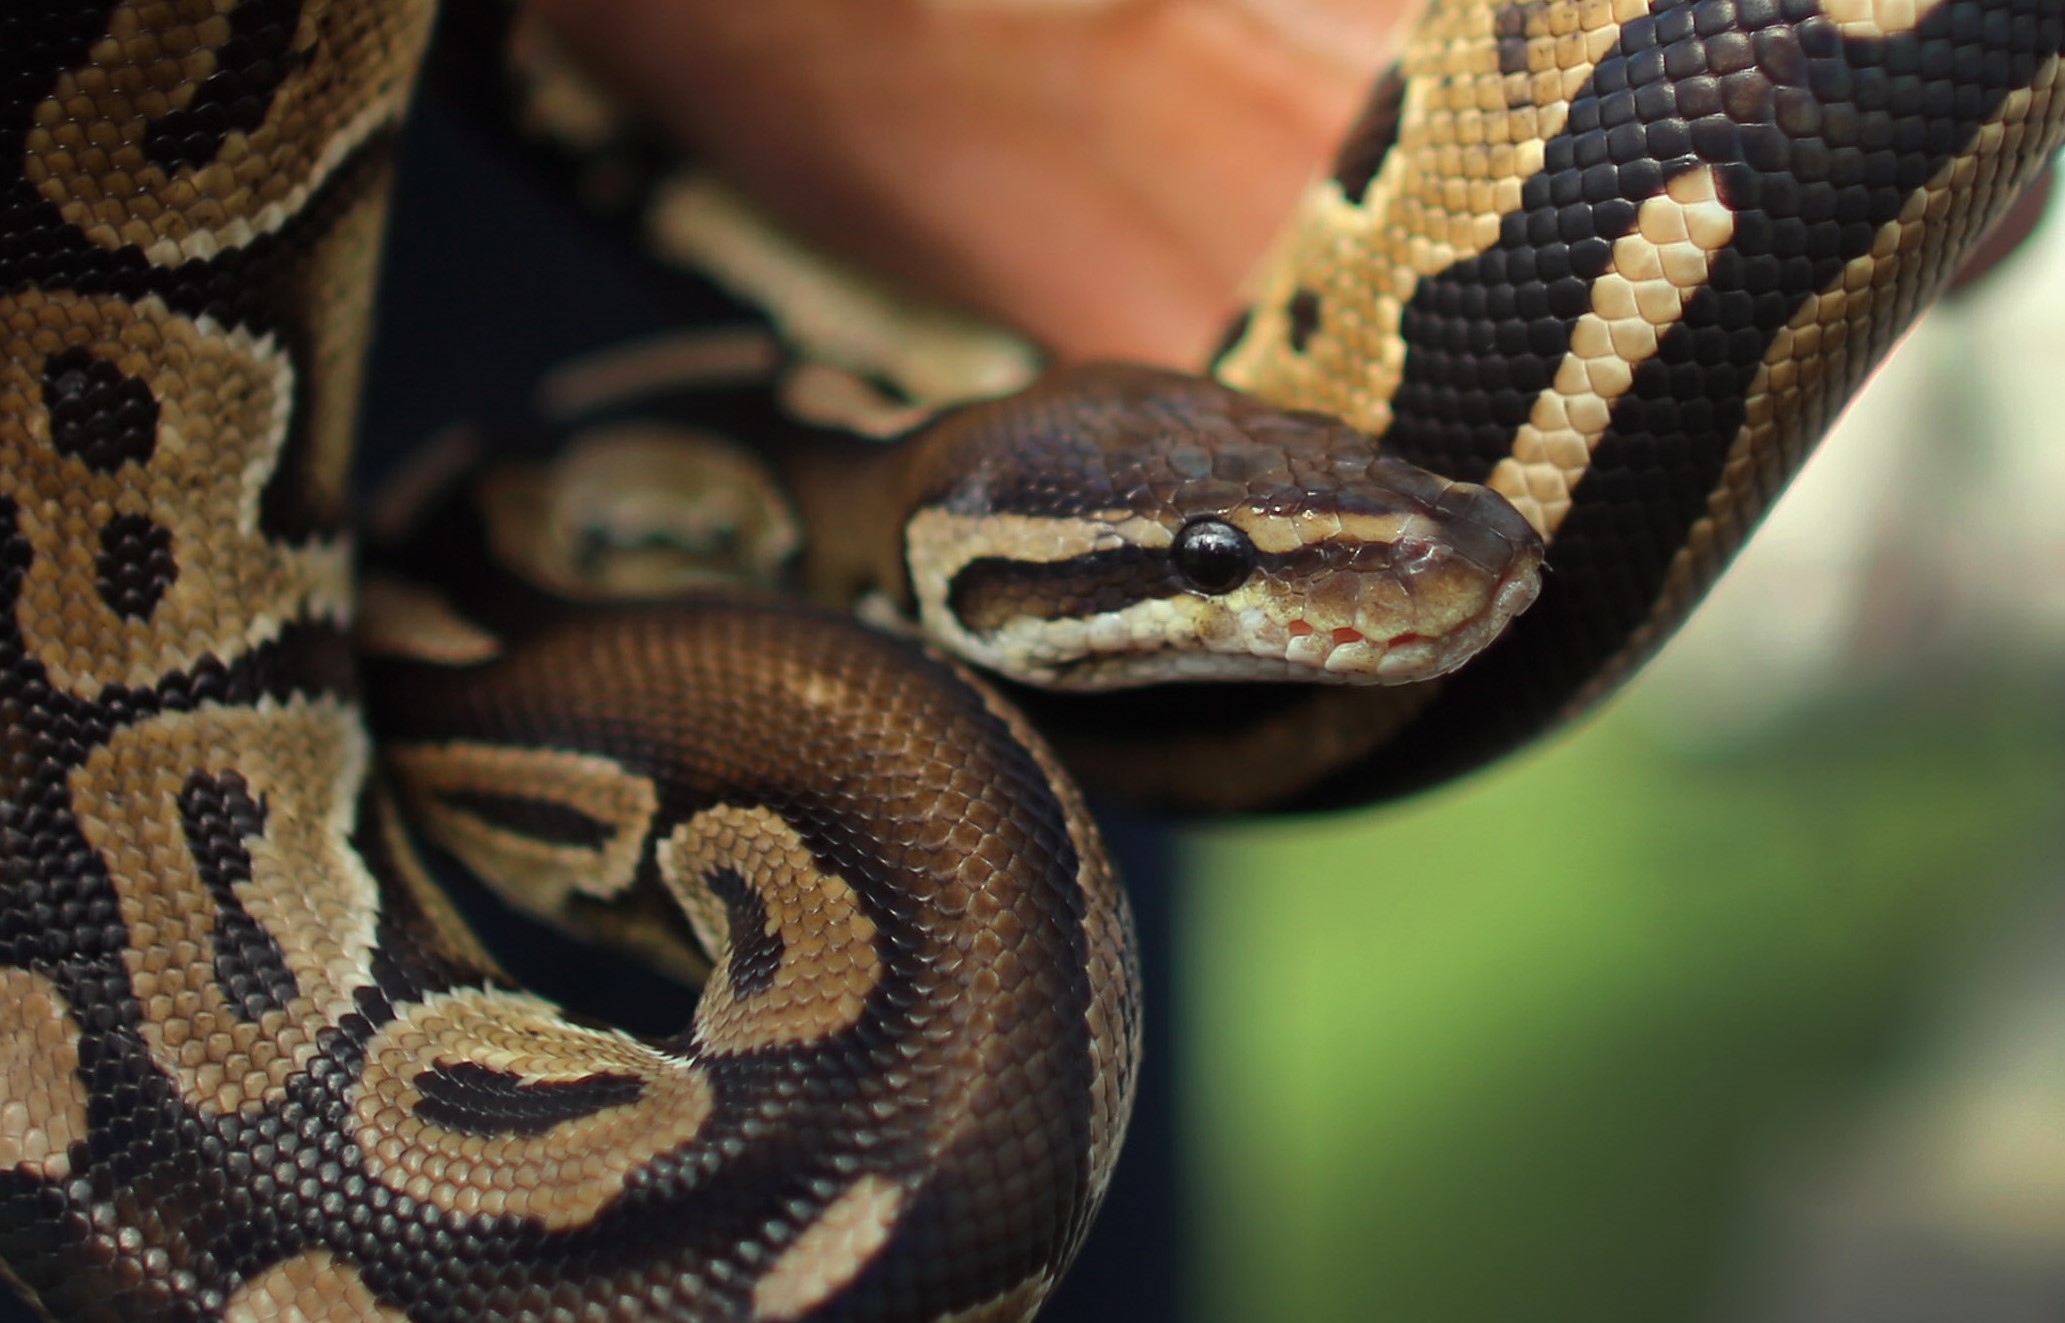 An example of a ball python. (Getty Images)